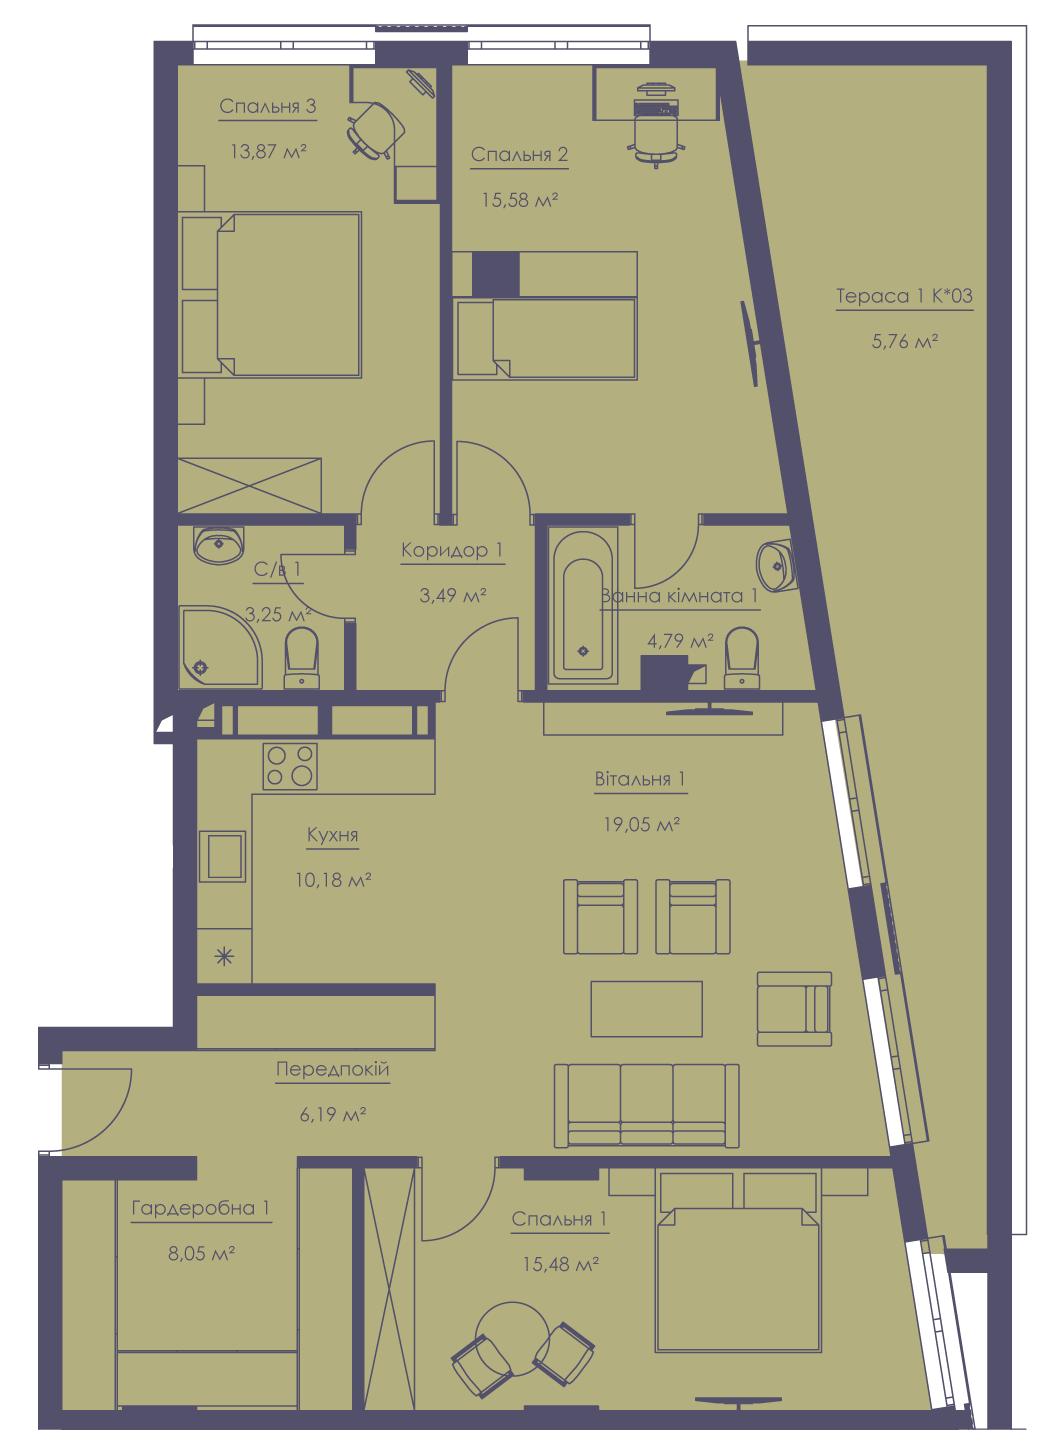 Apartment layout KV_133_3.4g_1_1_11-1